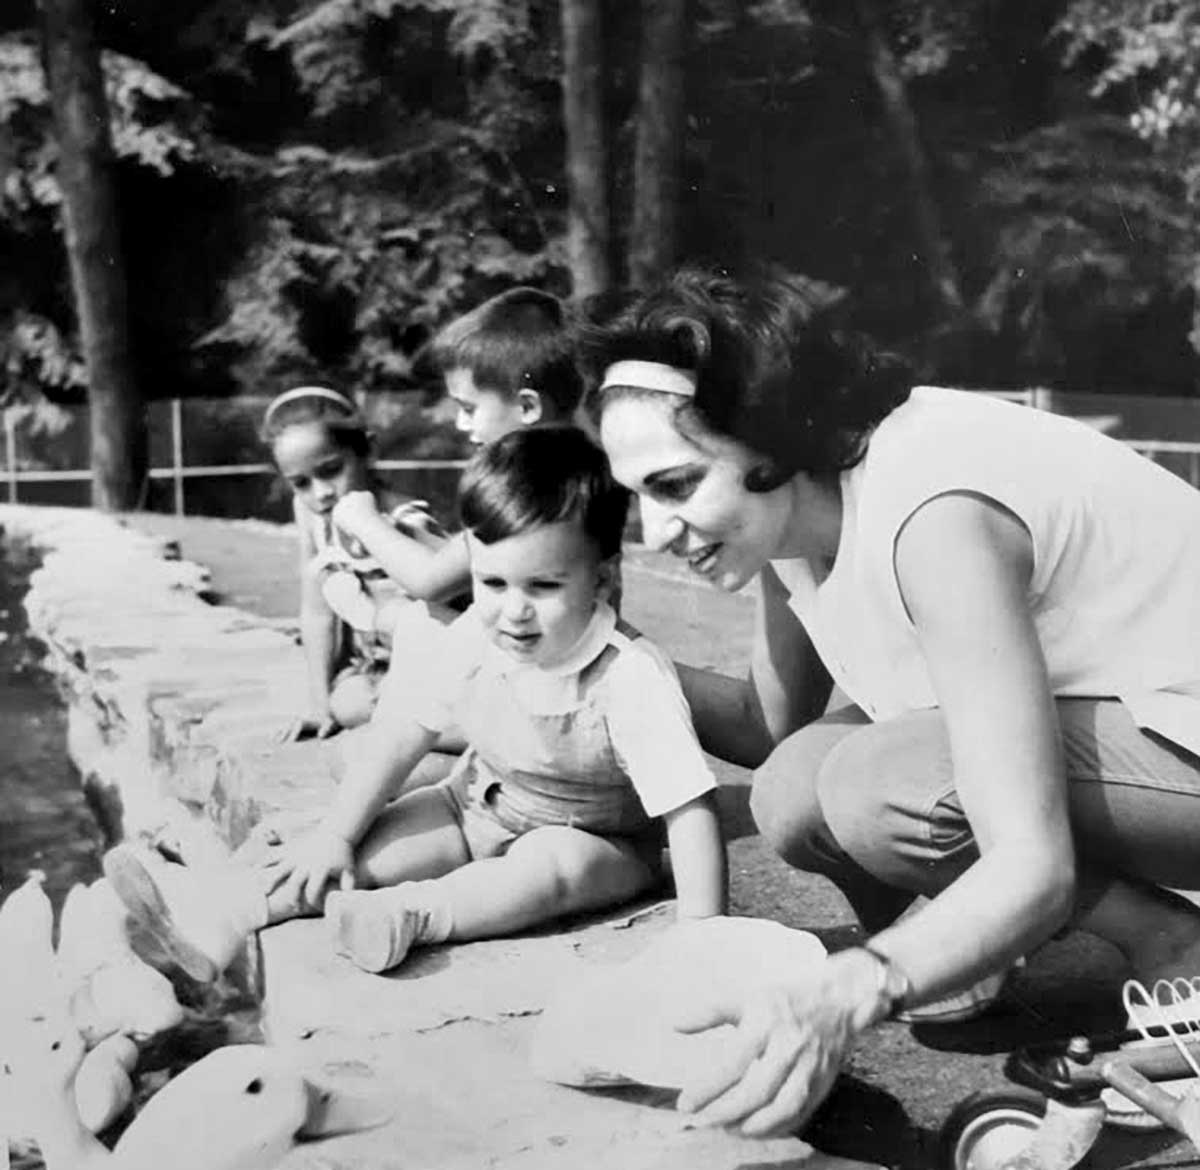 Black and white photo of my mom kneeling down next to me at age maybe 3, we both are looking at ducks in a pond.